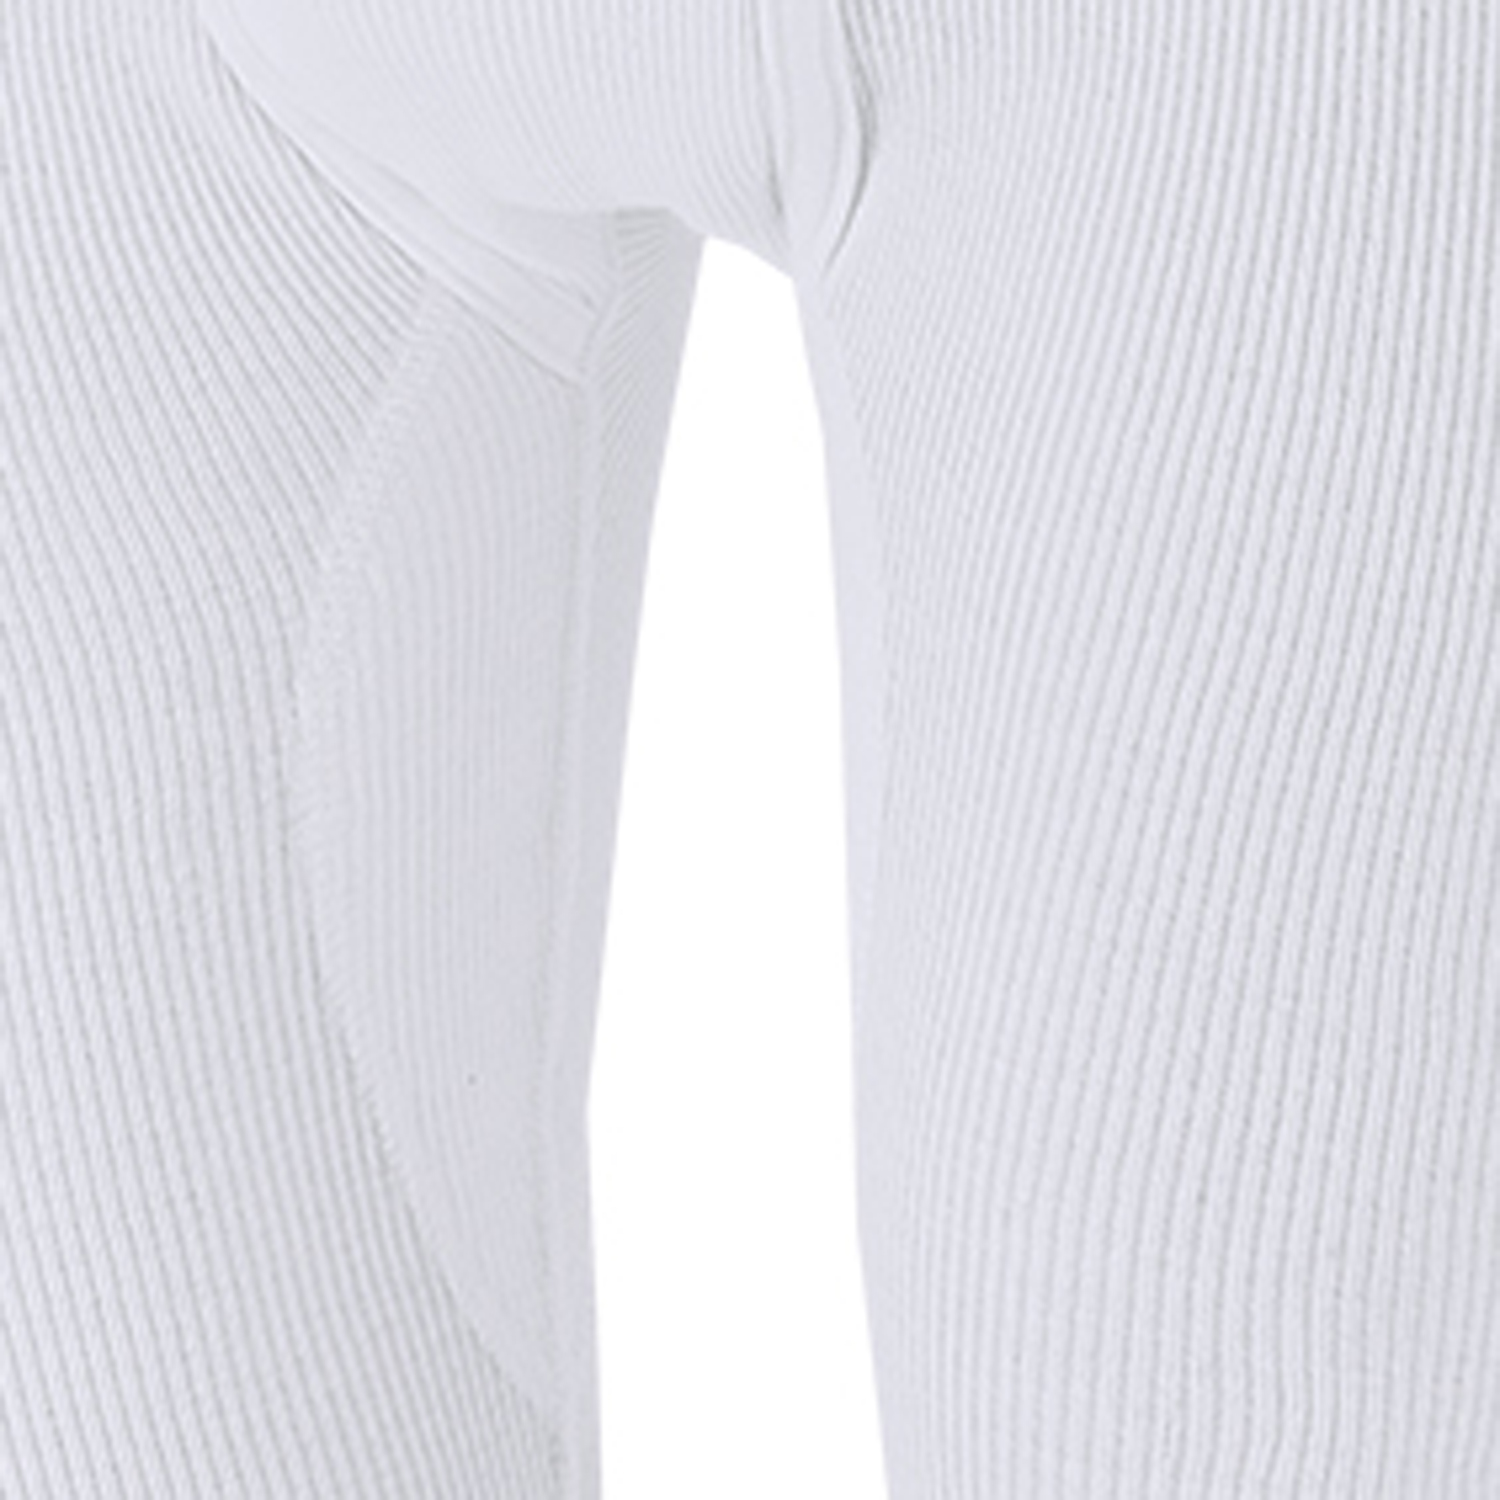 Detail Image to White double rib PRESTIGE ¾ trousers by ADAMO up to kingsize 20